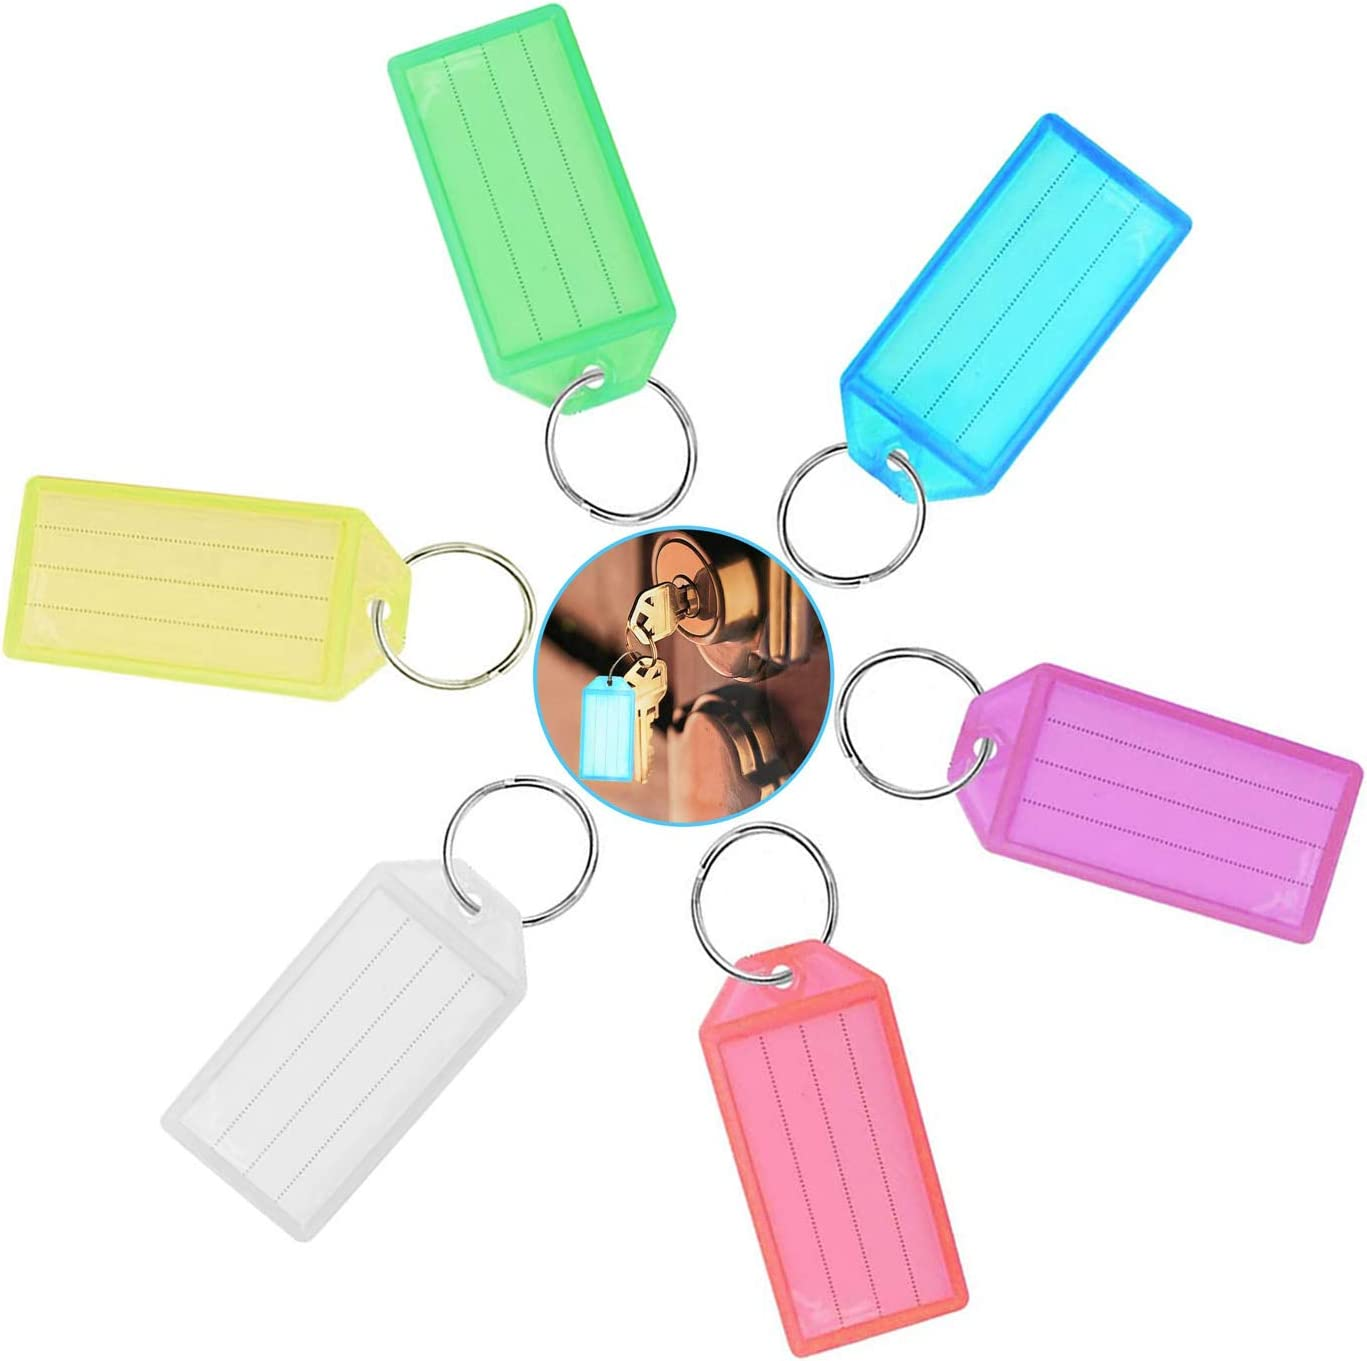 Key Fobs,Key Tags 60 Pack Coloured Keyring Tags Fobs Plastic Luggage Labels with Ring and Labels for Luggage Pet and Bag School Office Home Luggage 6 Colors